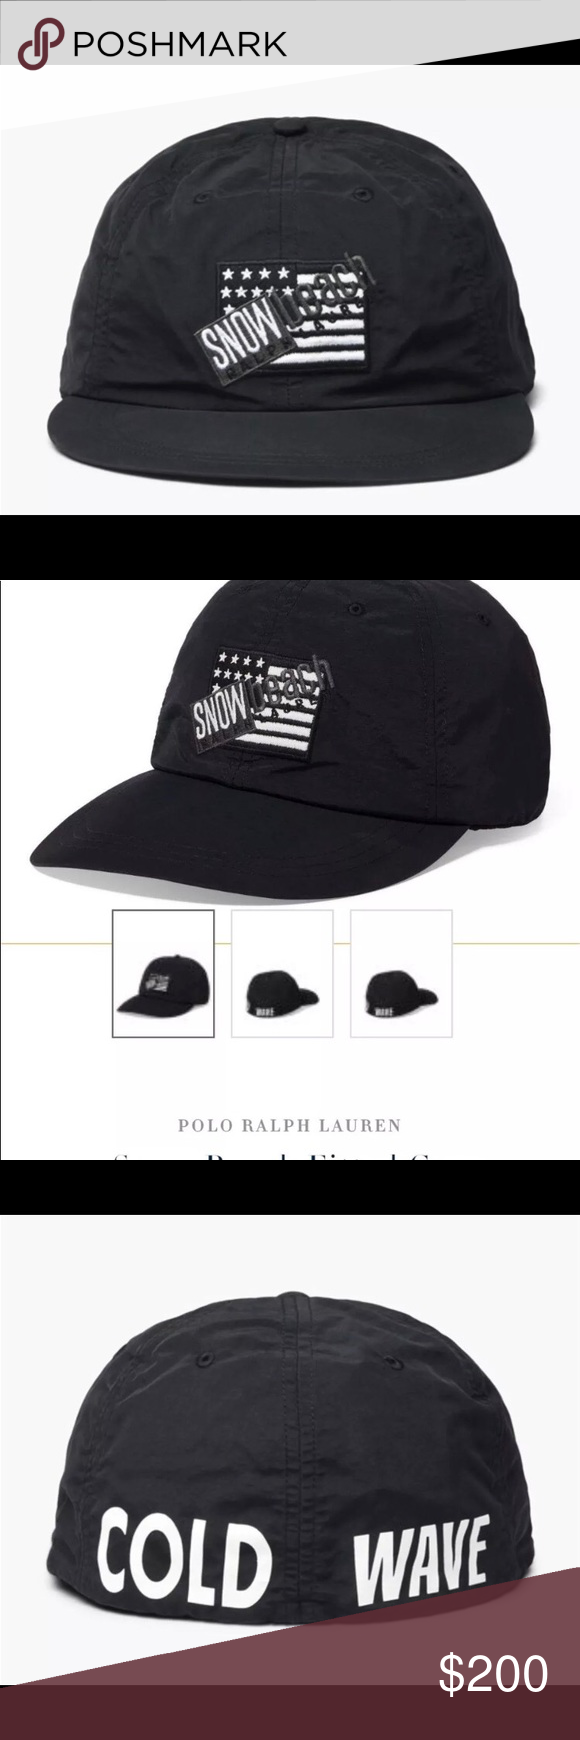 ca8e5cad96f Polo Ralph Lauren Snow Beach black and white cap Up for sale is a brand new